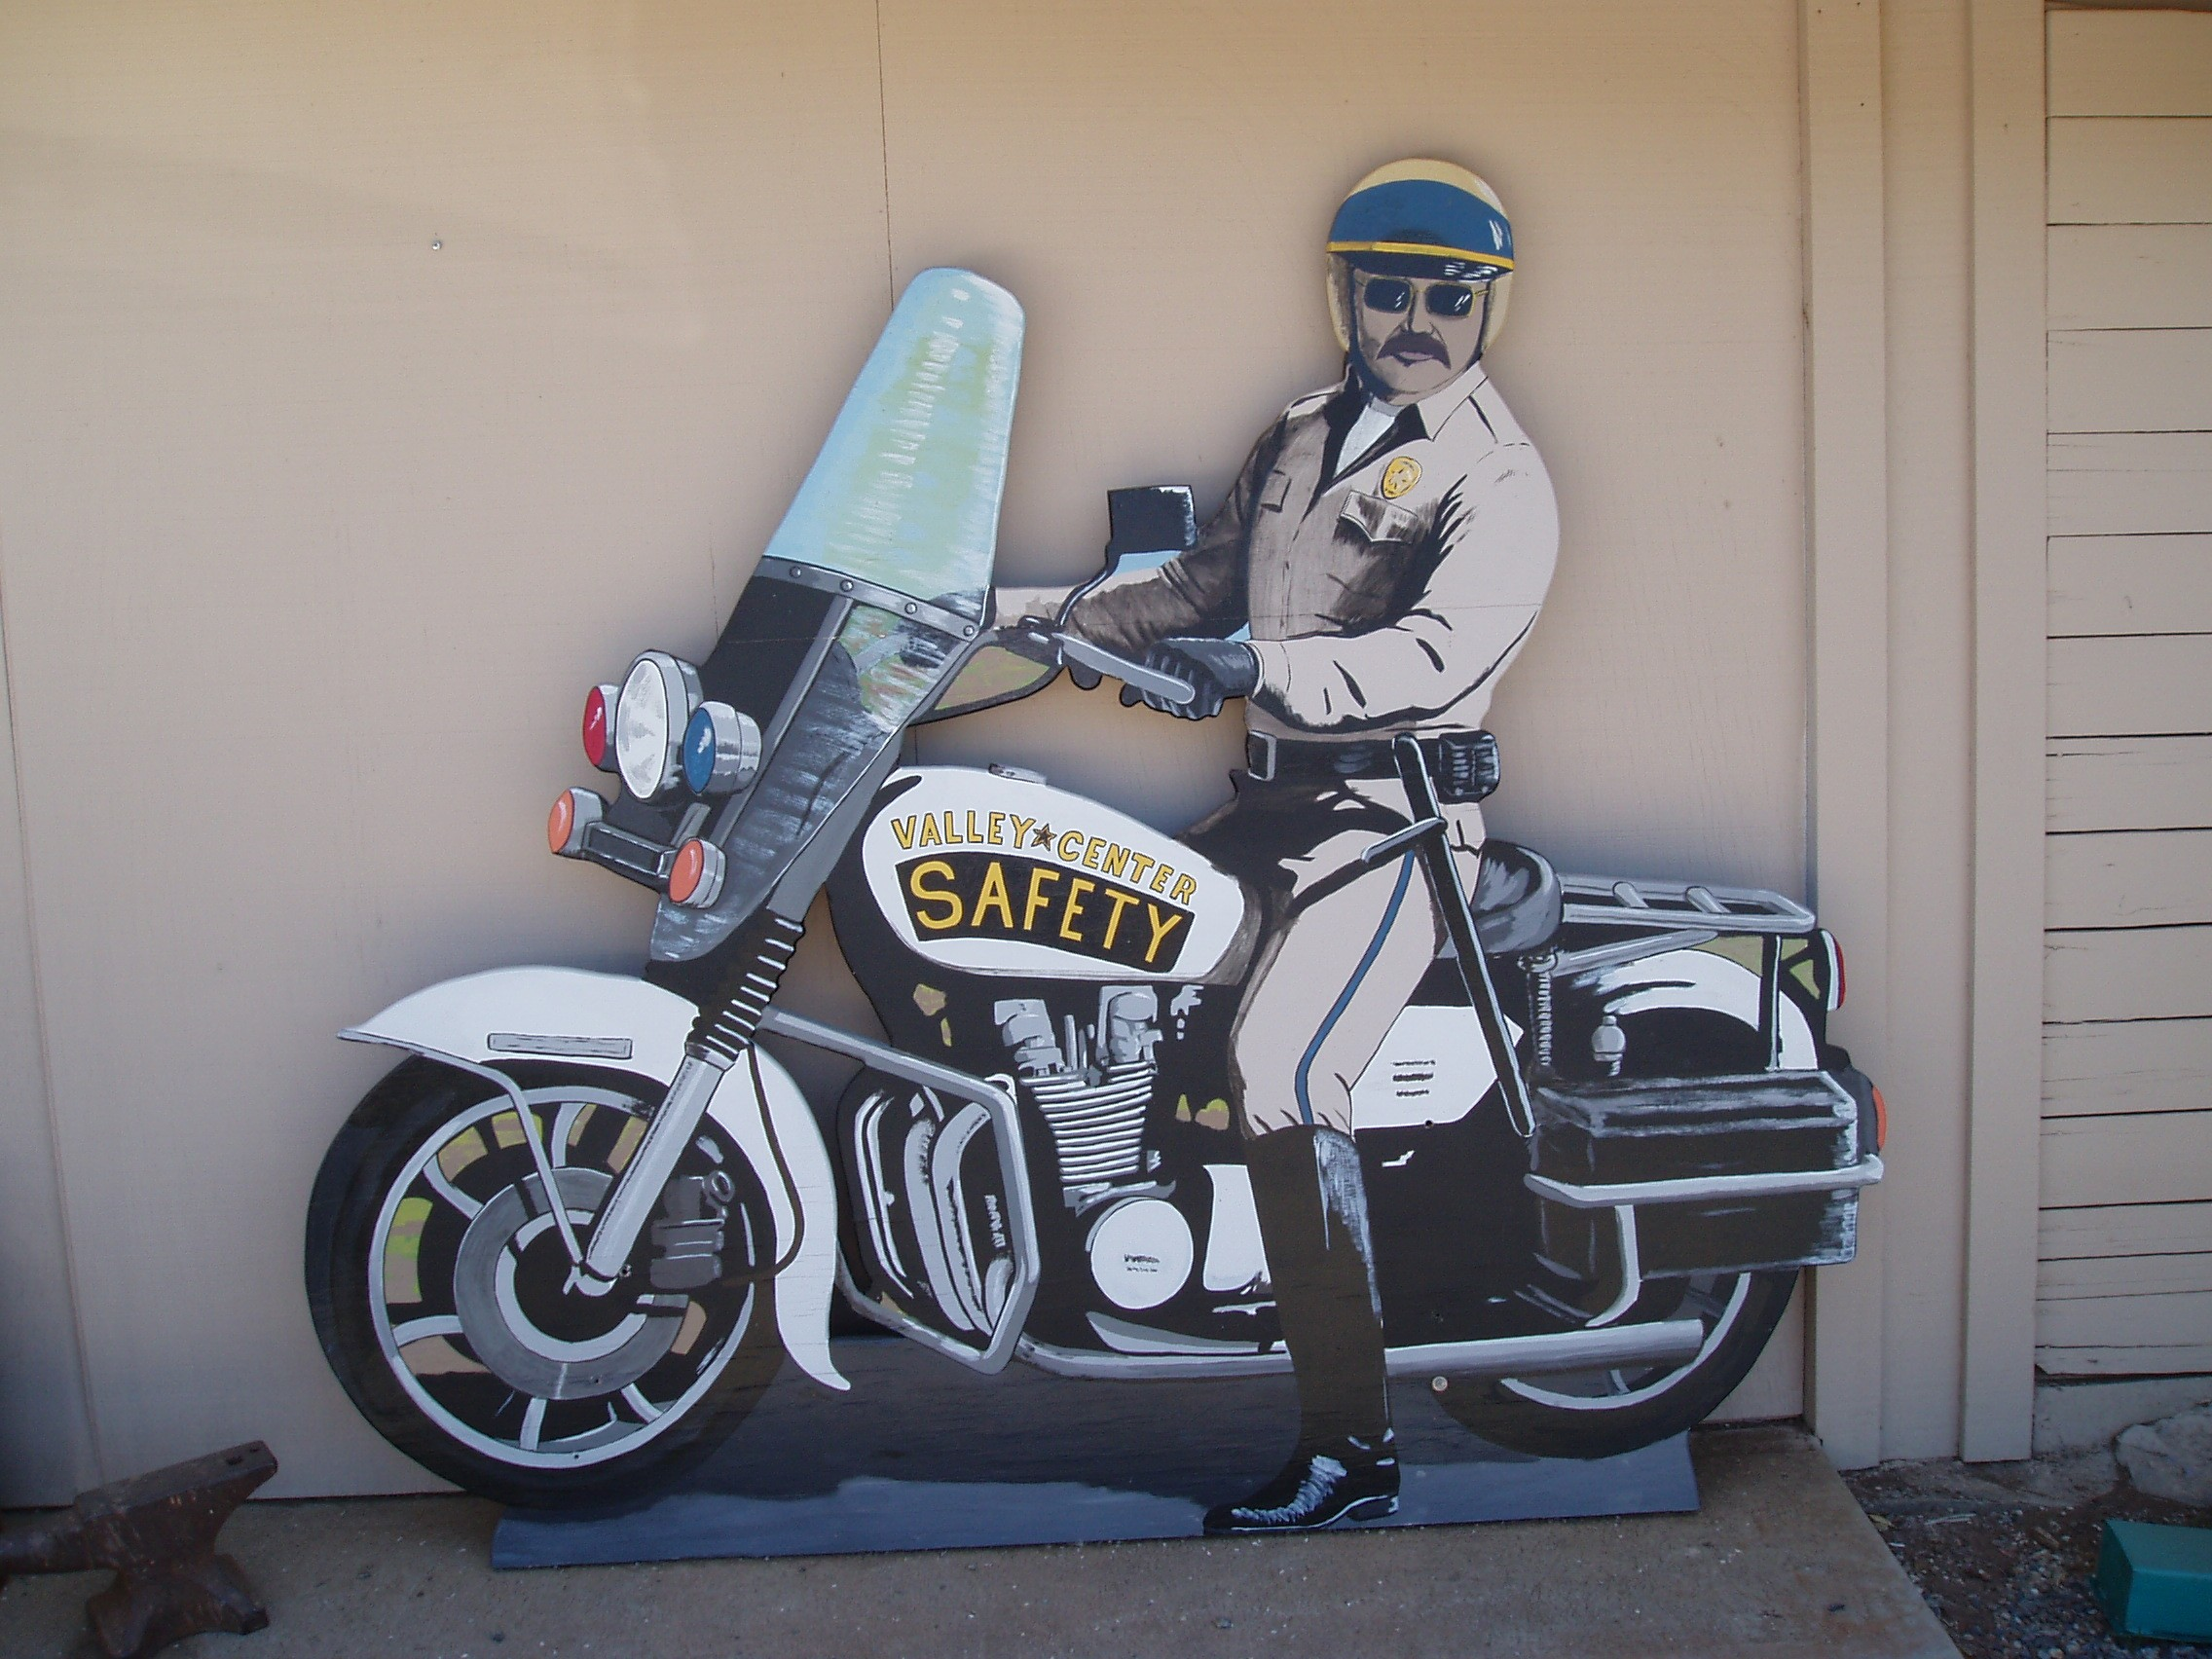 lifesizecutout_motorcycle cop_police officer.jpg